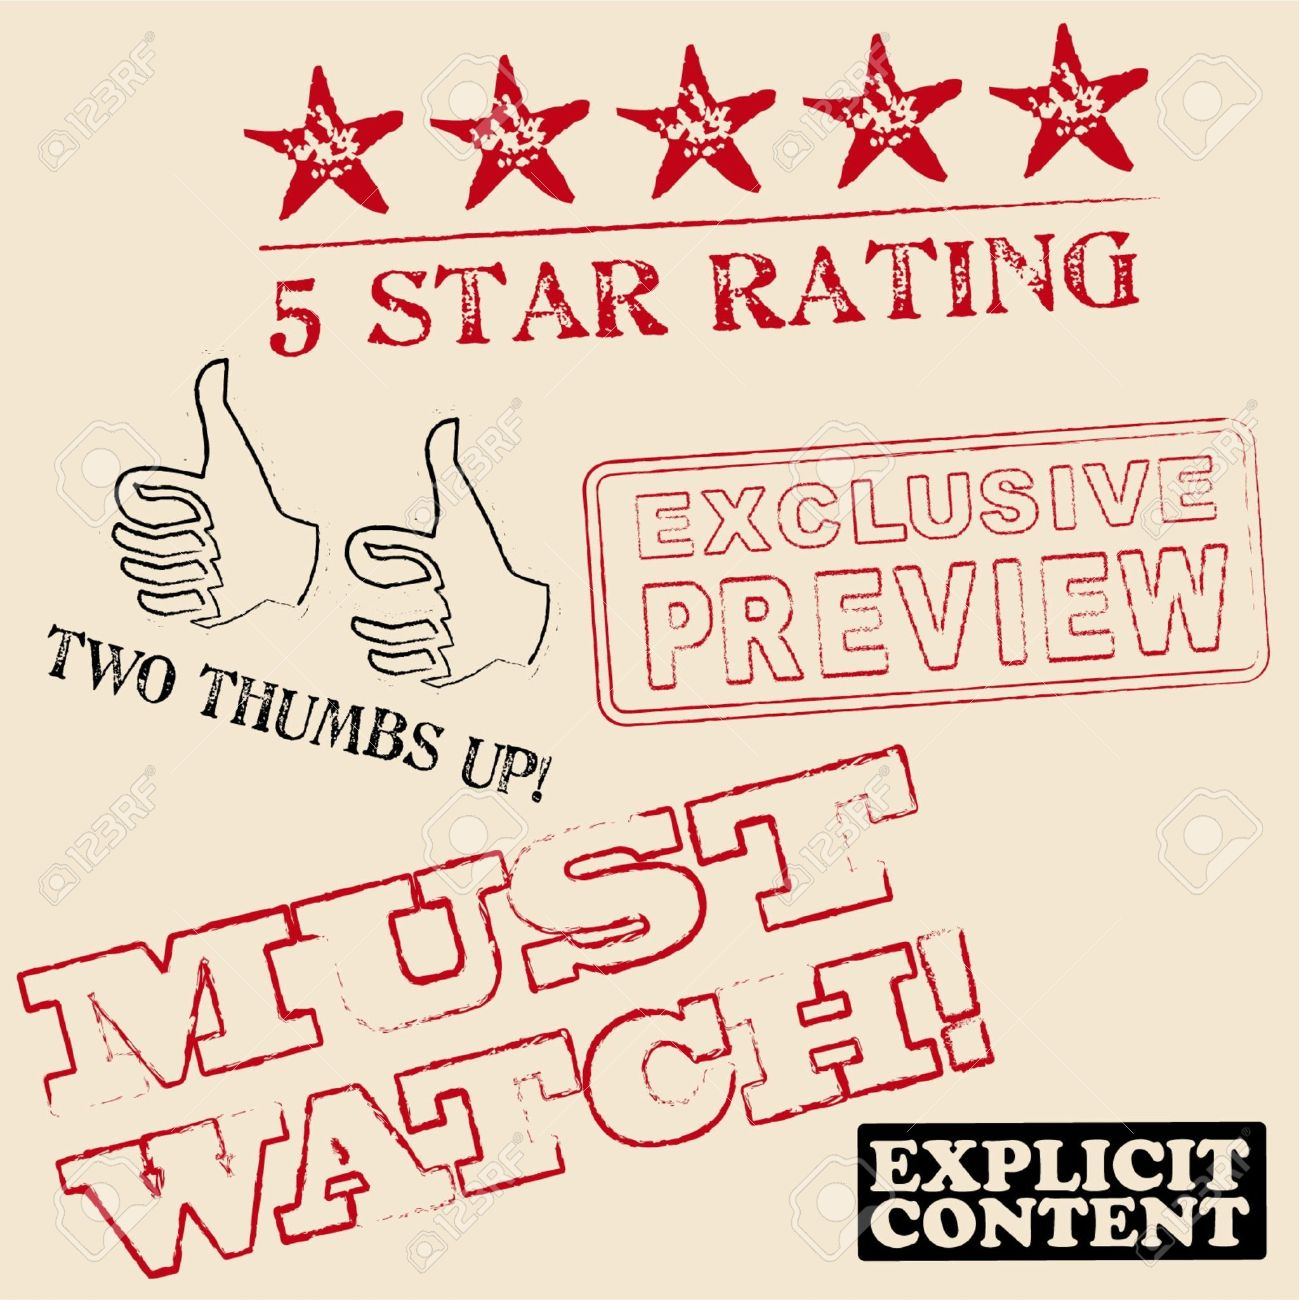 Movie Review Clipart.